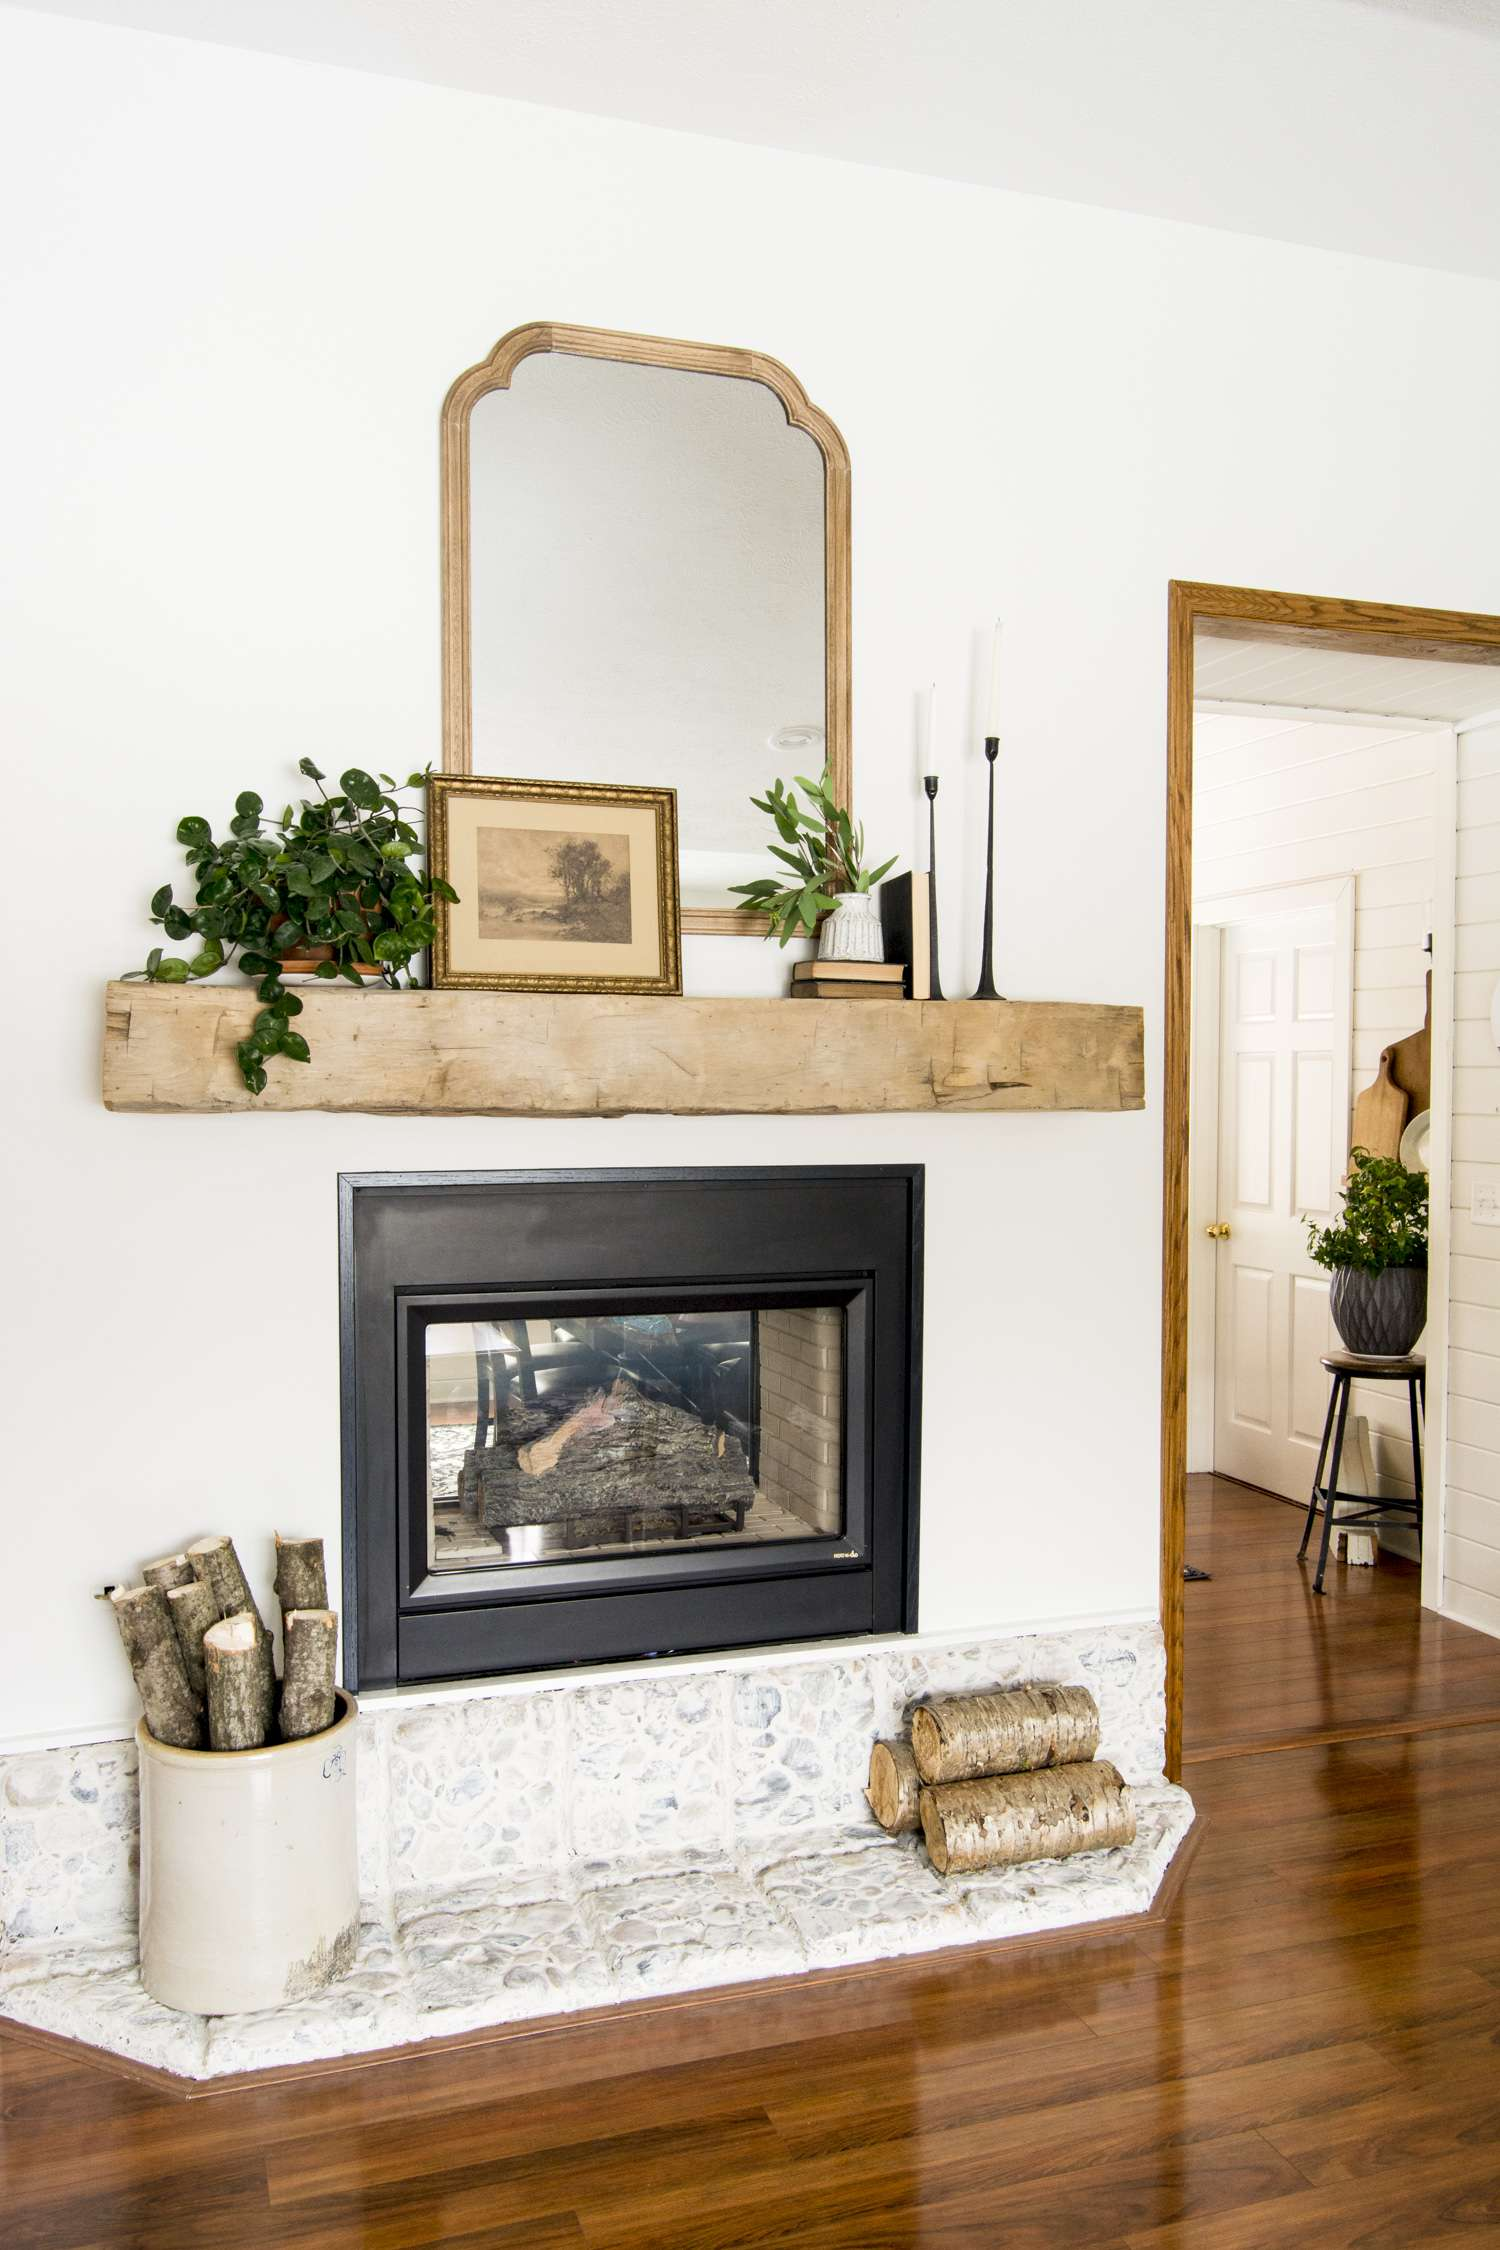 Floating modern farmhouse mantel.